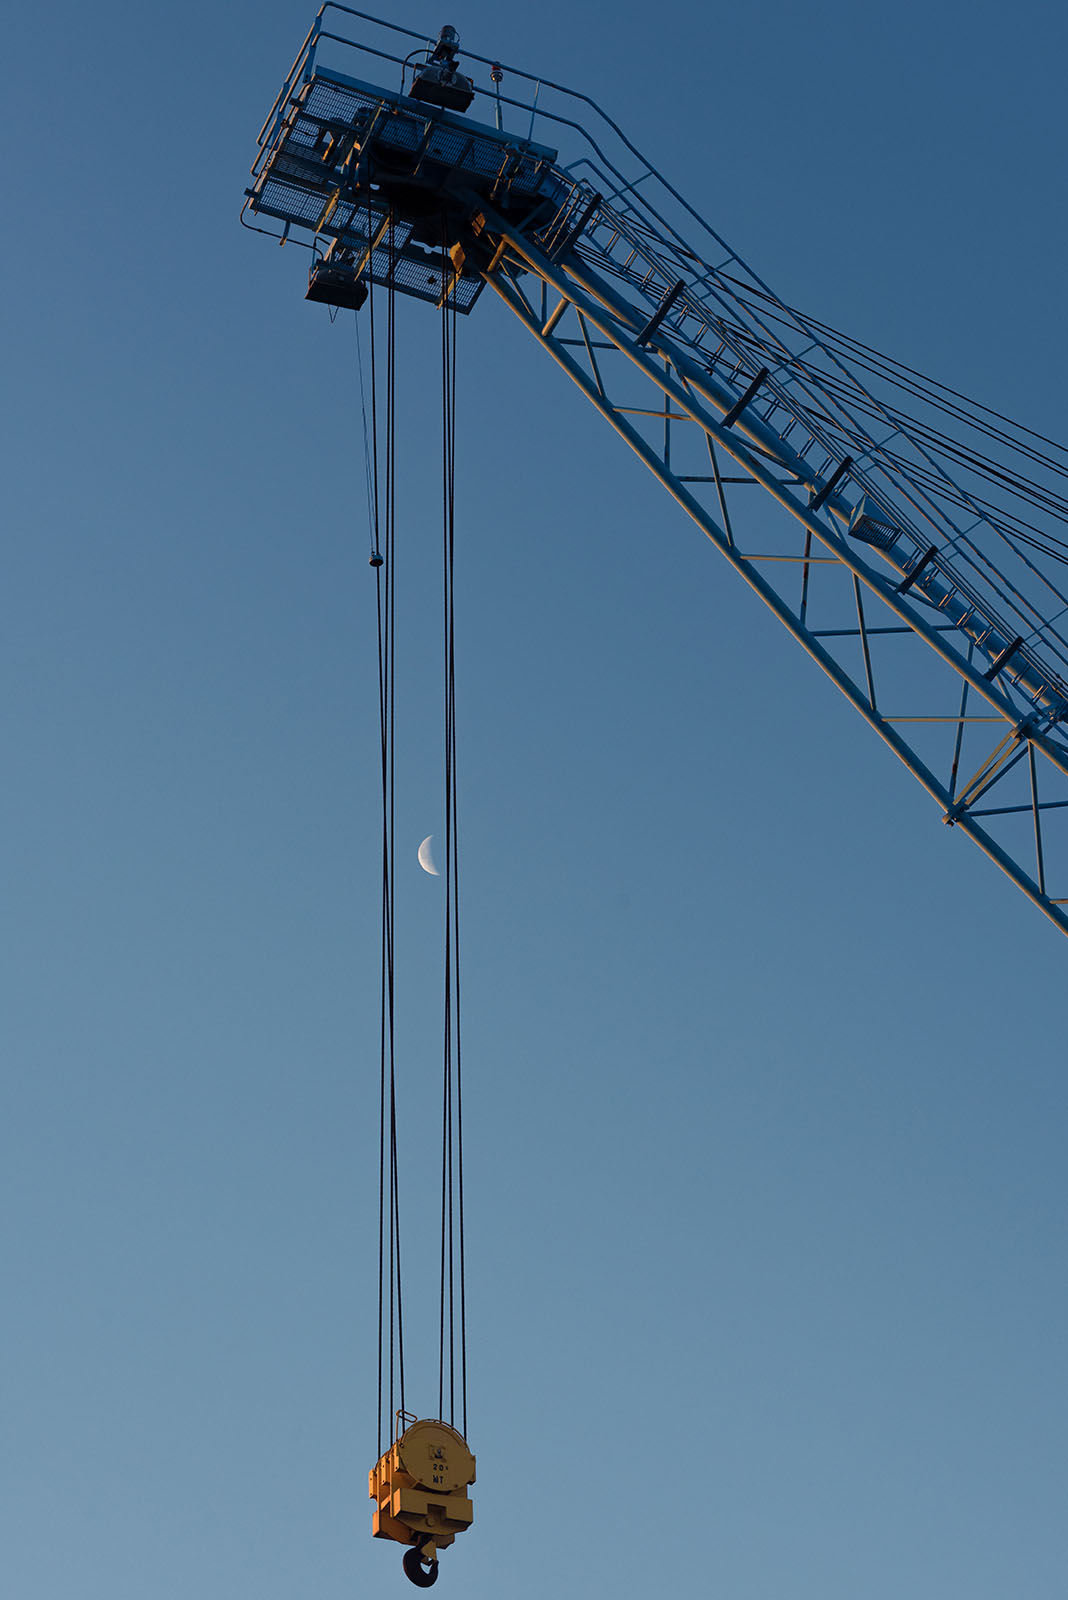 The moon hangs between crane wires in the early morning hours.